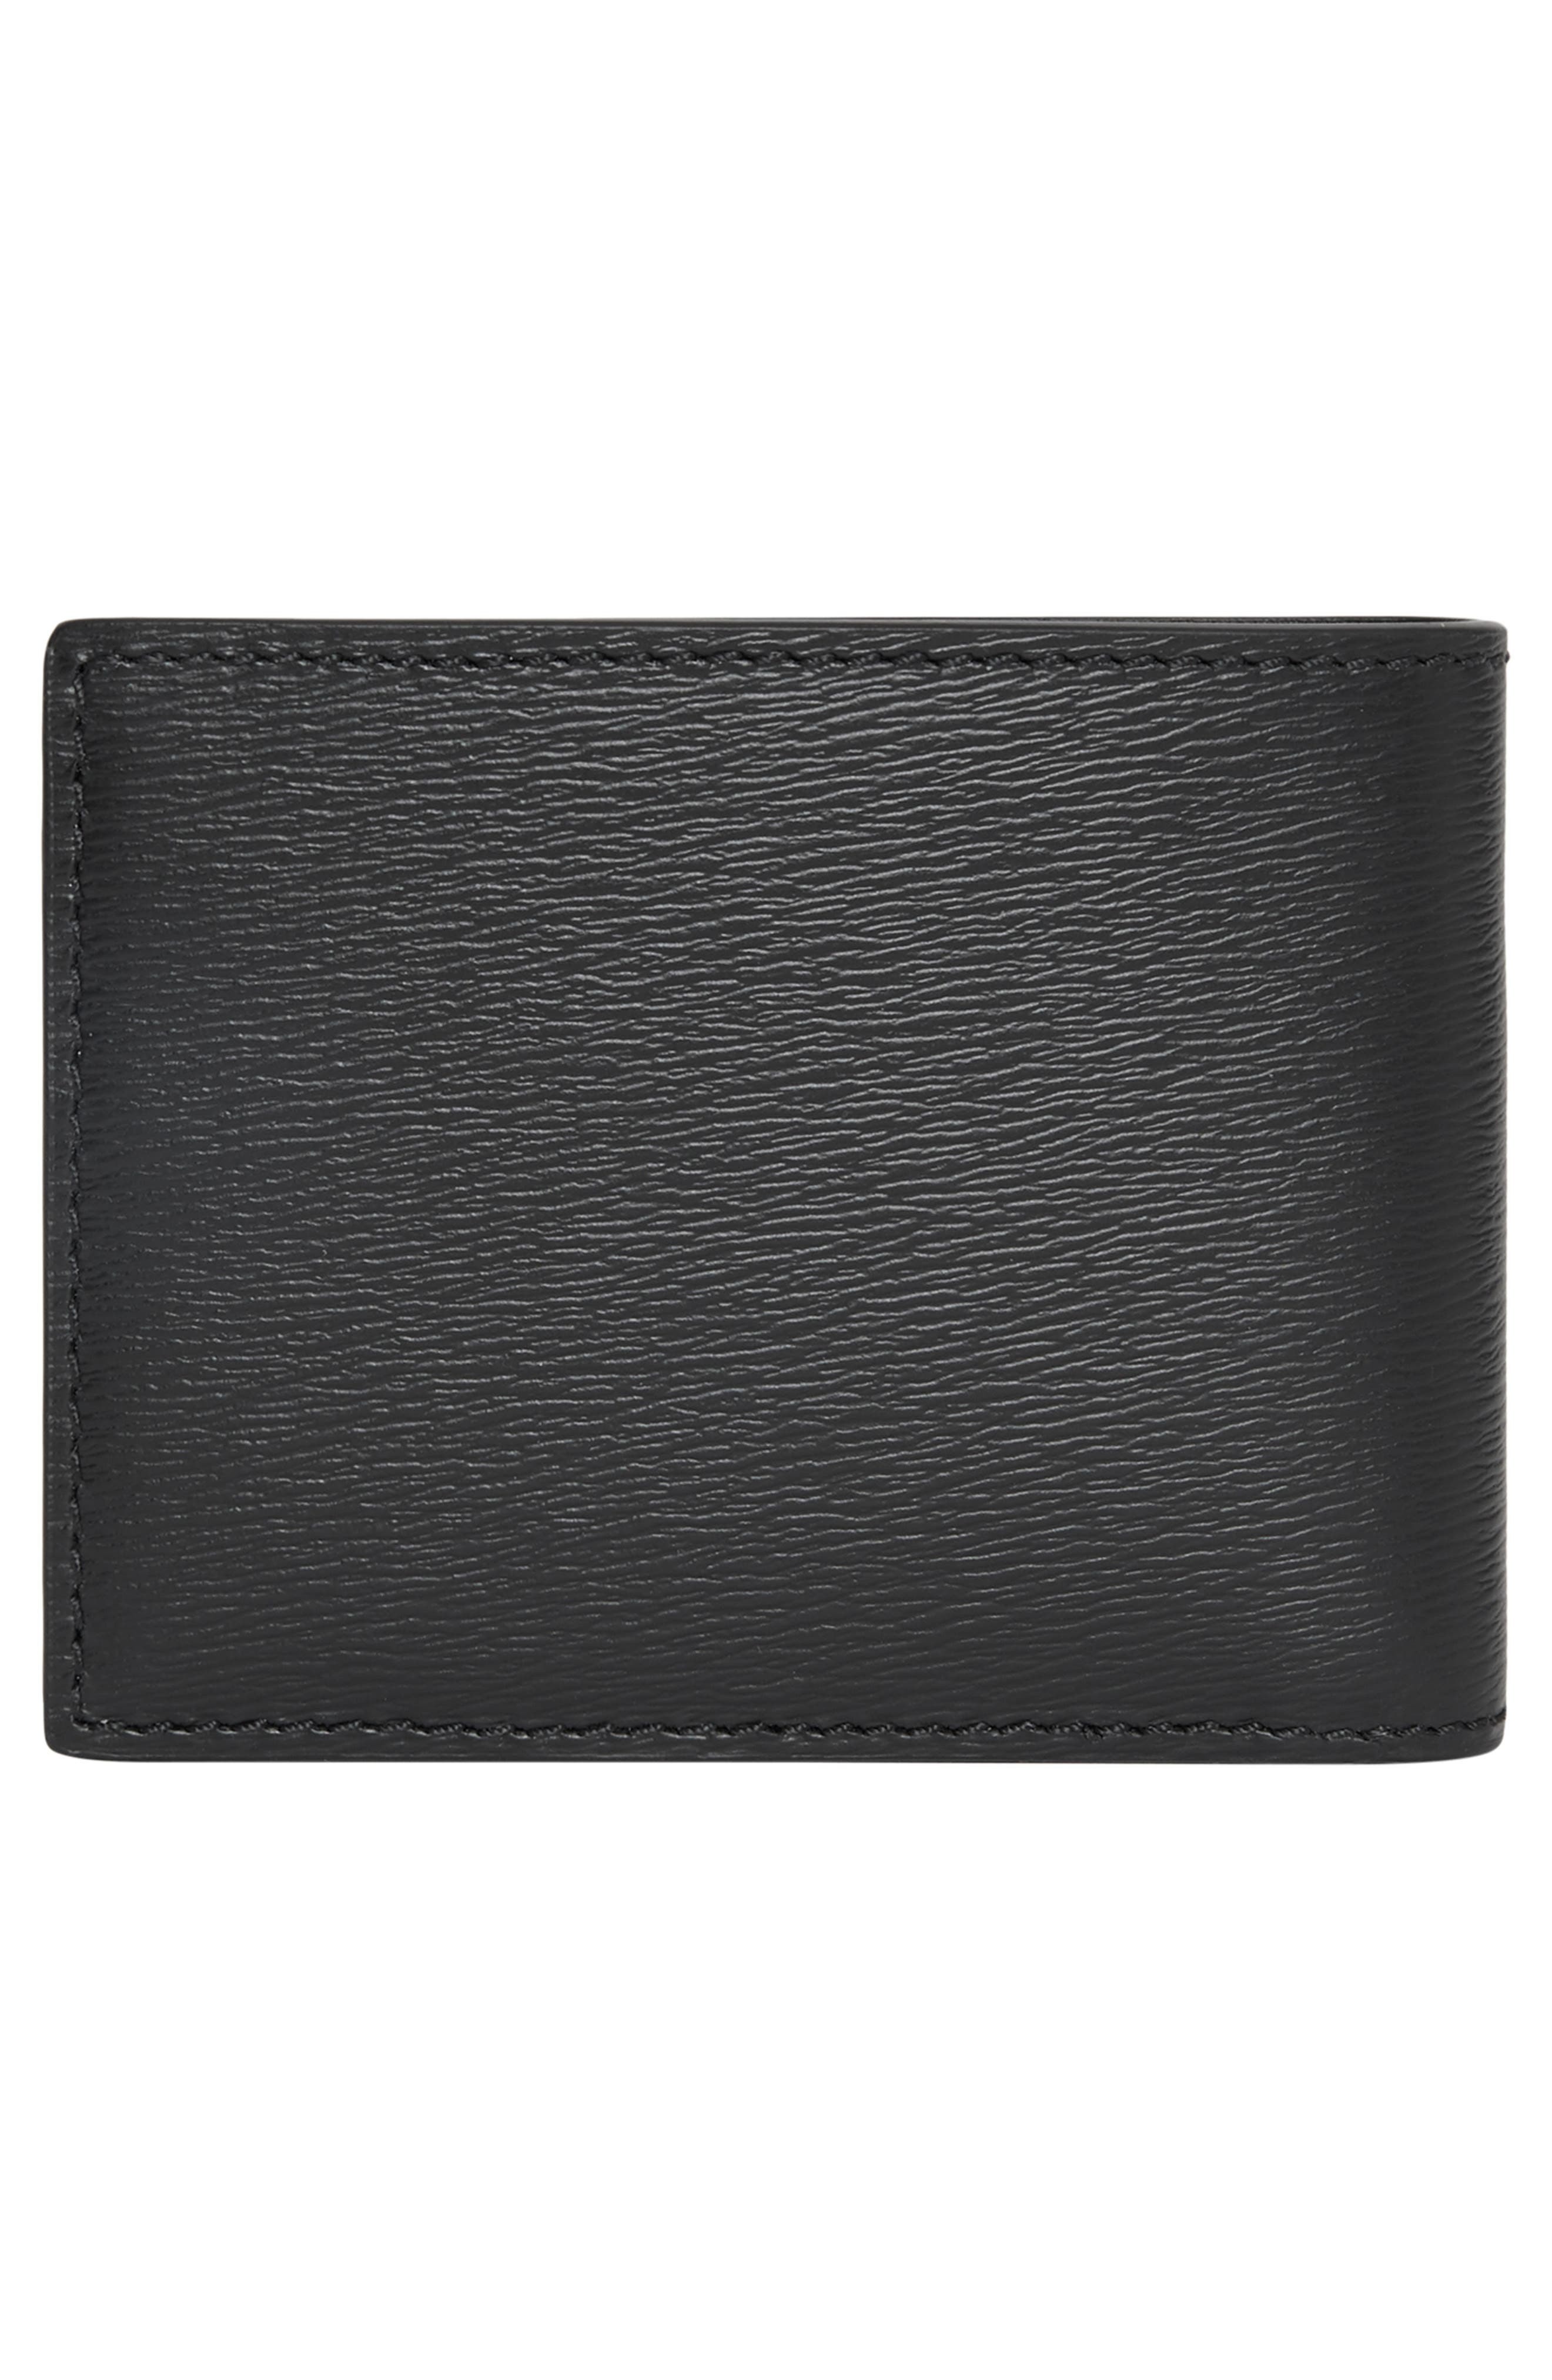 BURBERRY, Leather Bifold Wallet, Alternate thumbnail 3, color, 001